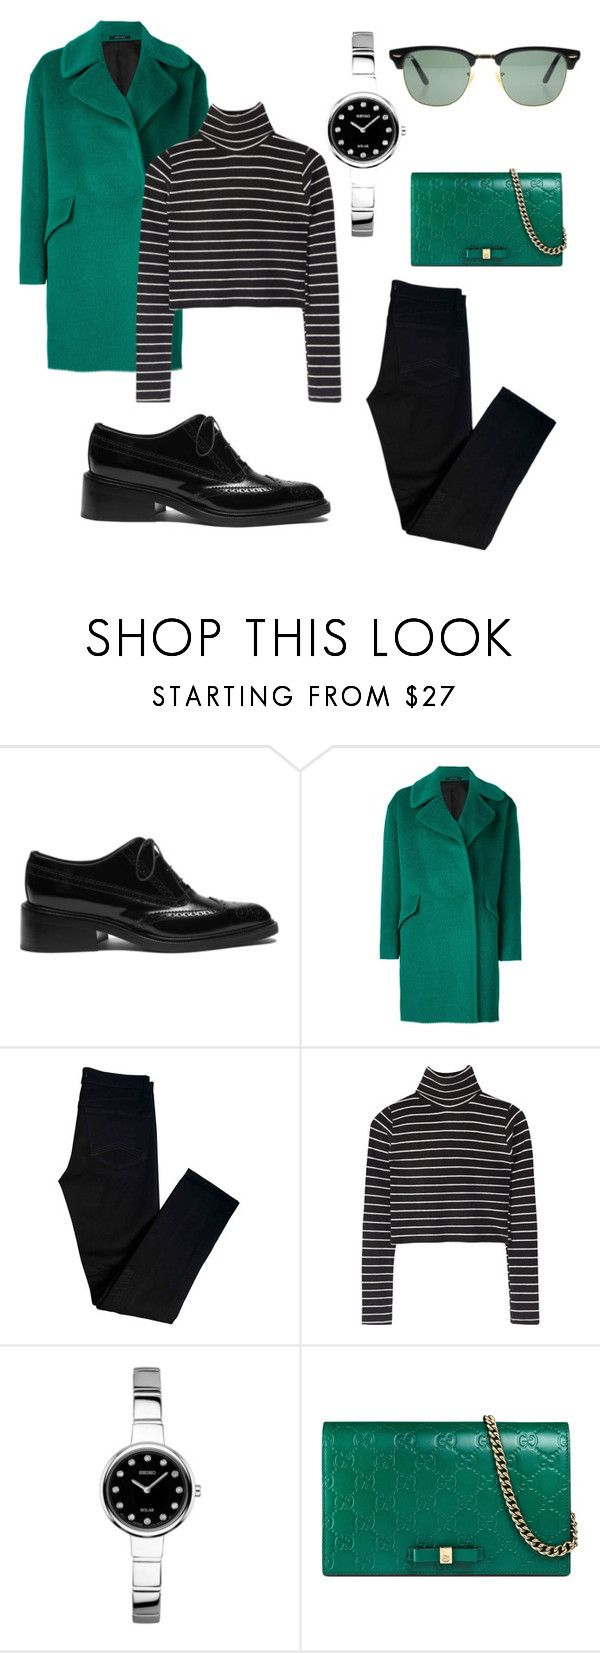 """Beauty 💚🖤"" by polusladkoy ❤ liked on Polyvore featuring beauty, Mulberry, Tagliatore, J Brand, Seiko, Gucci and Ray-Ban"